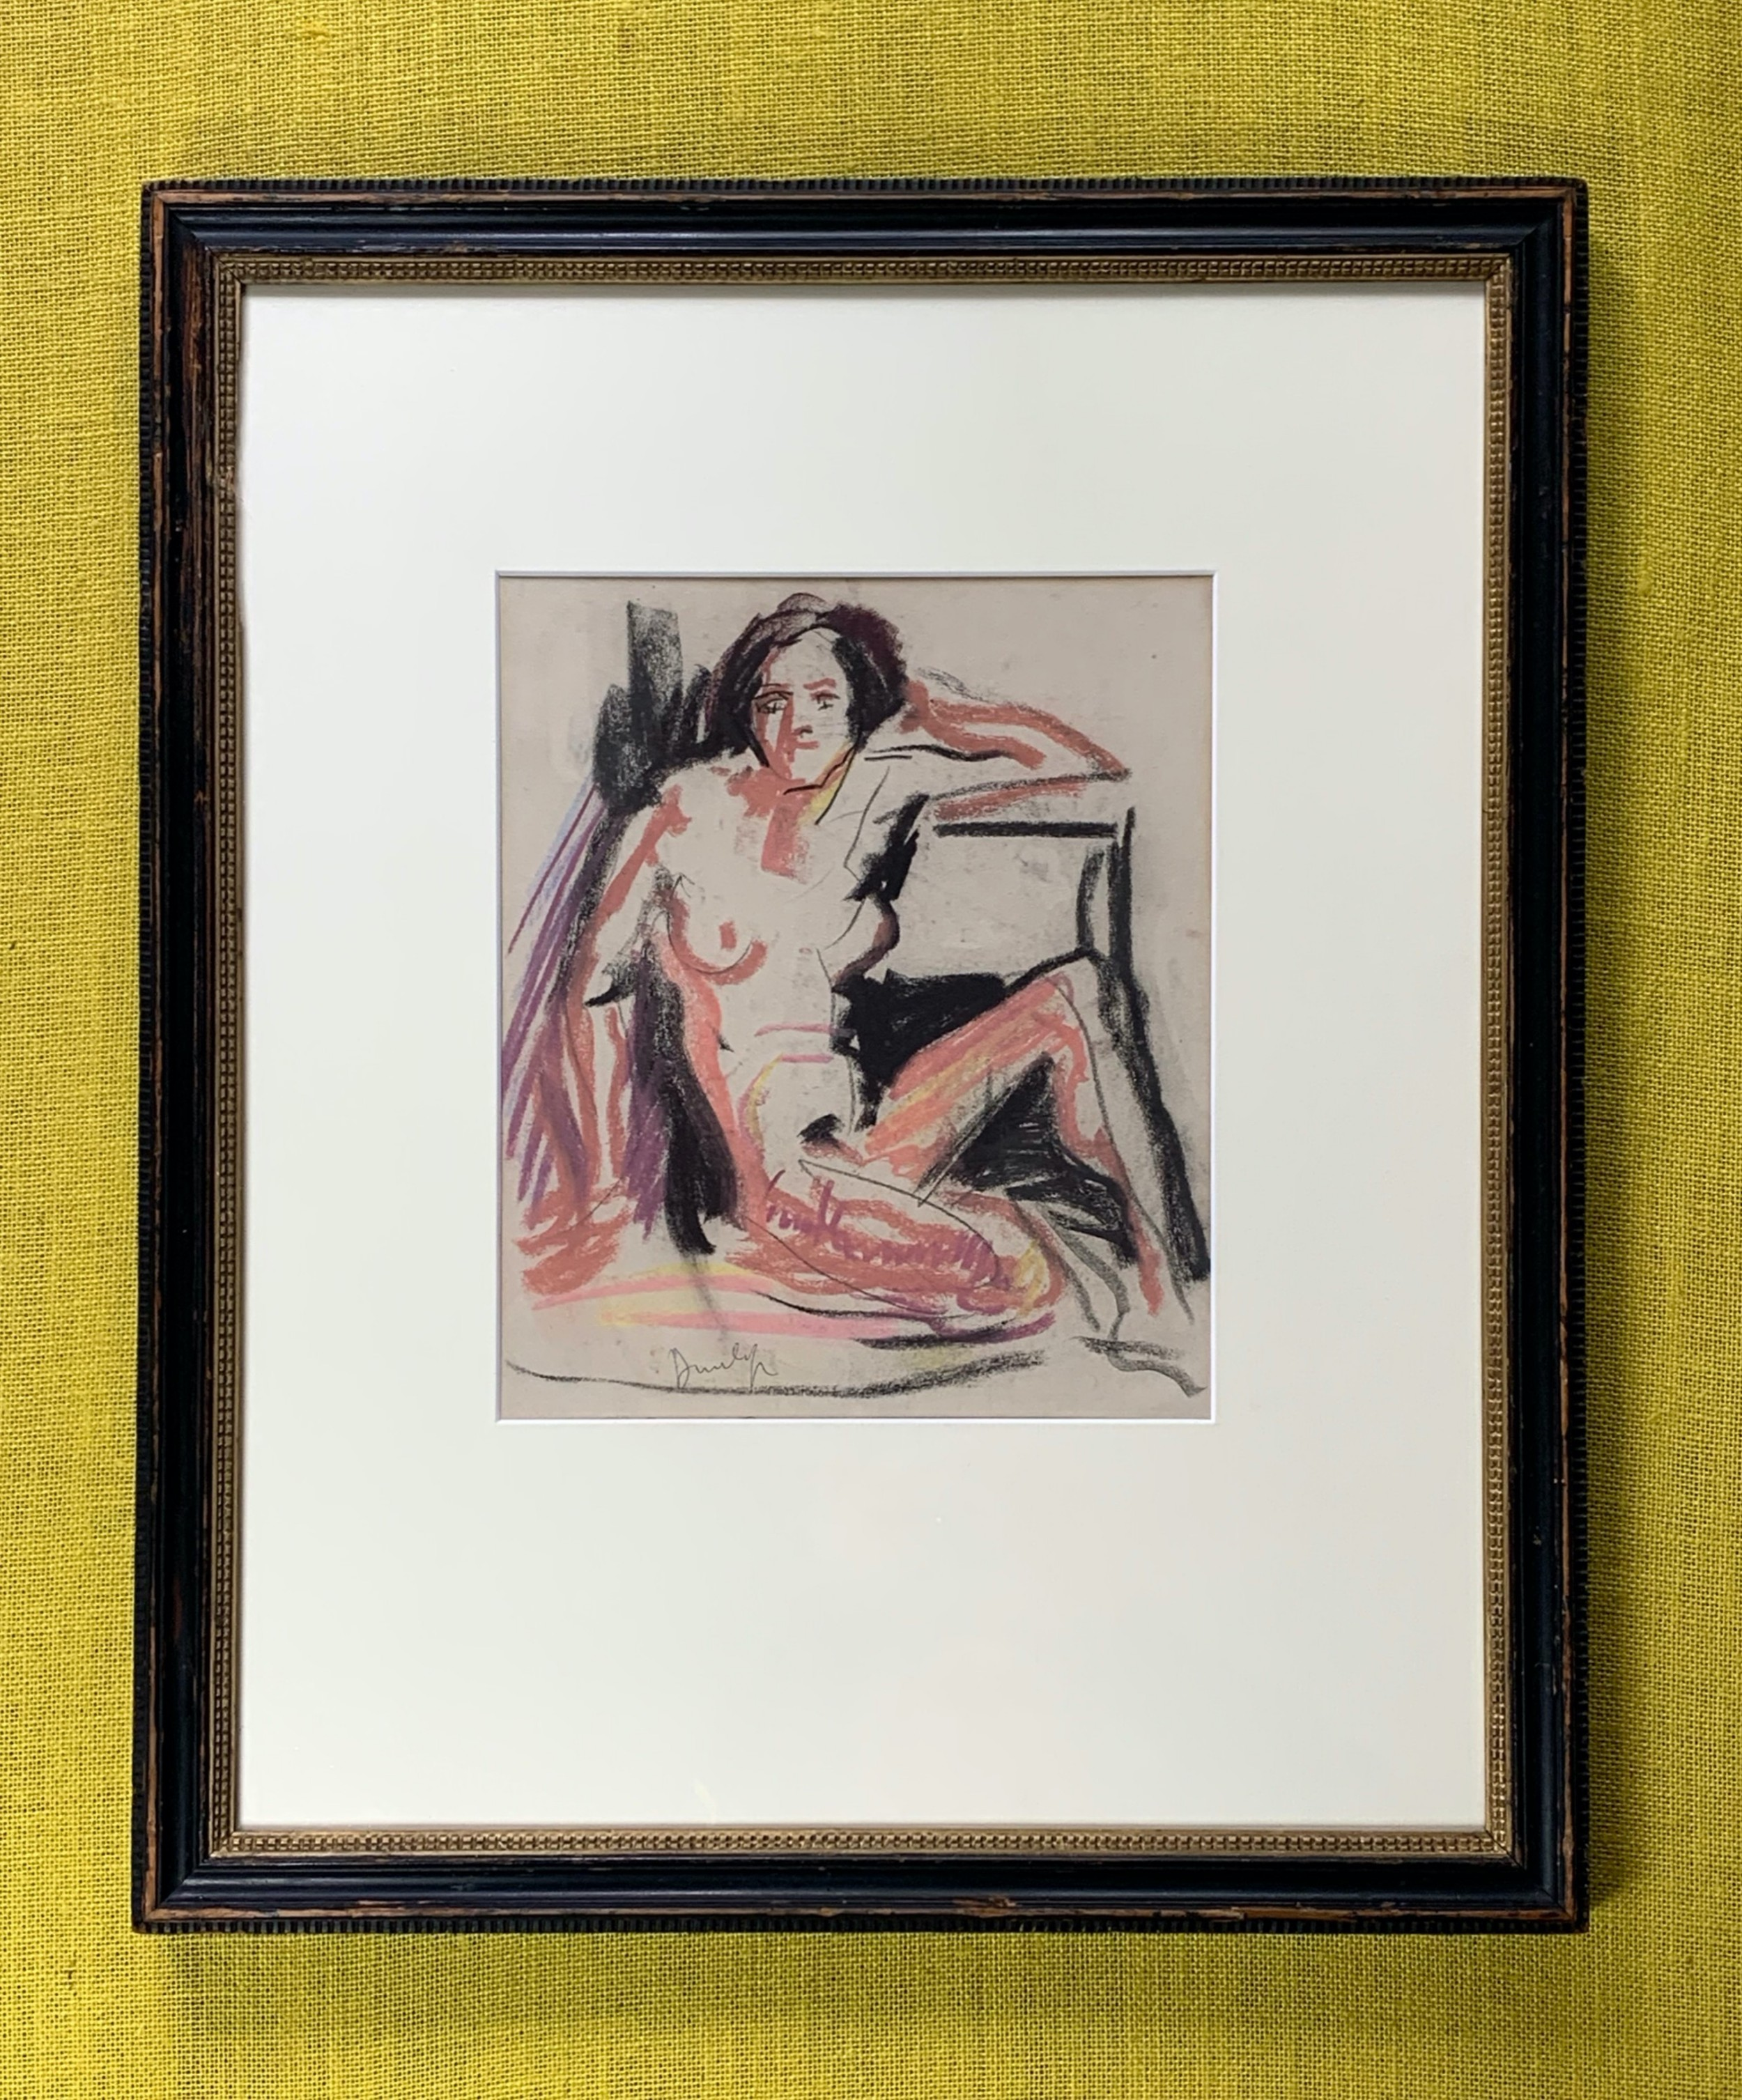 impressionistic mid century british female nude crayon study by ronald ossory dunlop 18941973